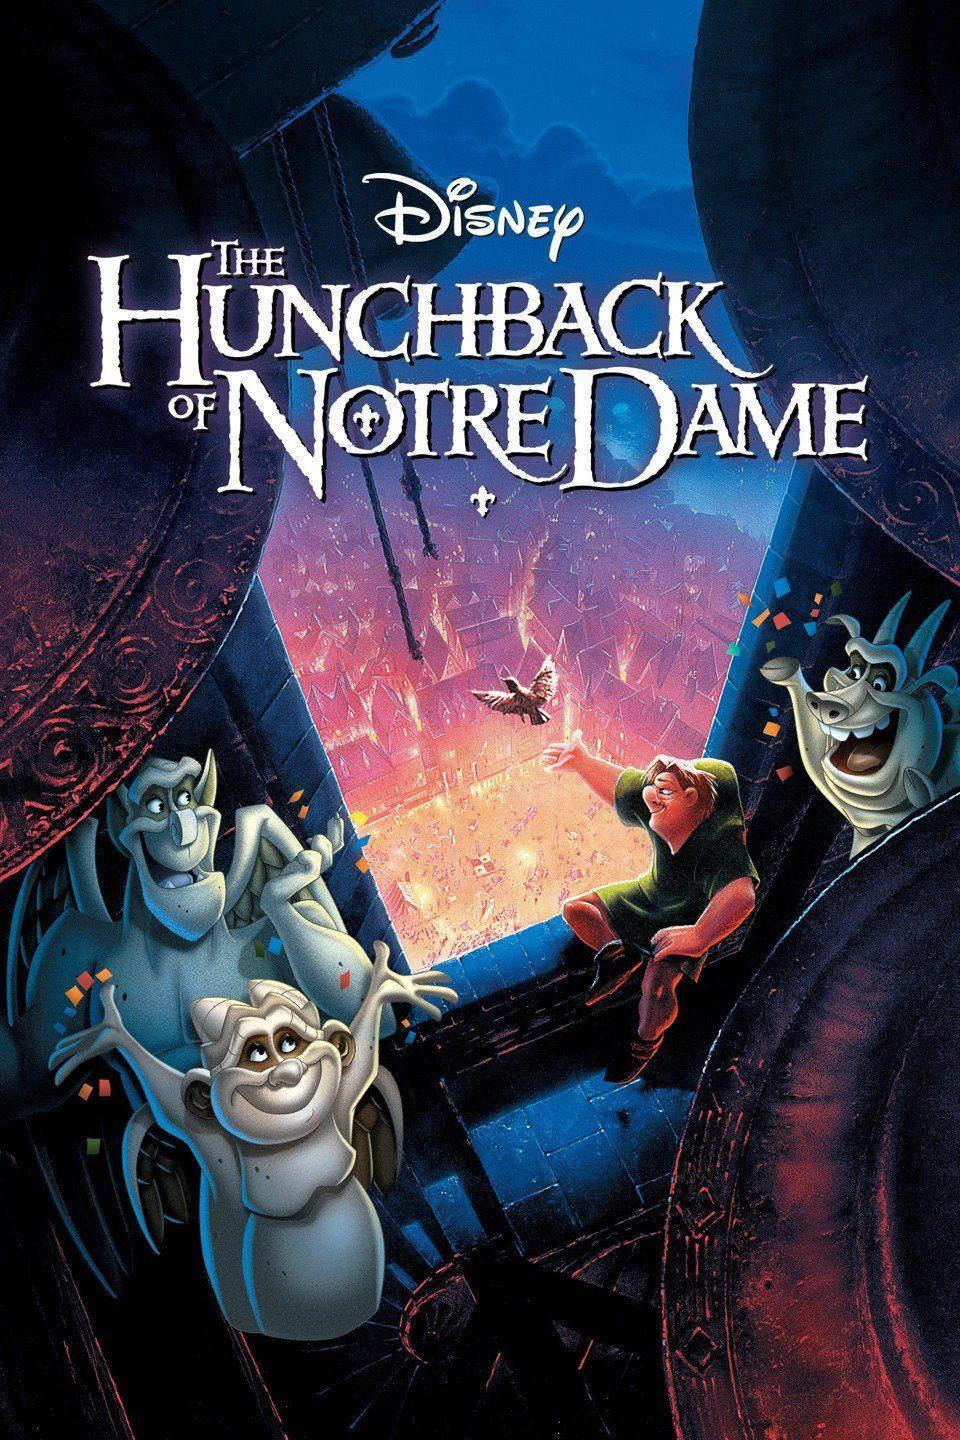 """<p>The bells are ringing again in Notre Dame! Disney has announced that <em>The Hunchback of Notre Dame </em>will be getting the live-action treatment and they're pulling out all the stops. Disney legends Alan Menken and Stephen Schwartz<em>, </em>who also worked on the music for the original animated film, will be working on the music for the live-action adaptation. <em>Frozen</em>'s Josh Gad will be producing the film and is rumored to be playing Quasimodo, while <em>Tarzan </em>musical writer David Henry Hwang will be writing the script, according to <em><a href=""""https://deadline.com/2019/01/hunchback-movie-disney-live-action-david-henry-hwang-josh-gad-alan-menken-stephen-schwartz-1202536031/"""" rel=""""nofollow noopener"""" target=""""_blank"""" data-ylk=""""slk:Deadline"""" class=""""link rapid-noclick-resp"""">Deadline</a></em>. </p><p><a class=""""link rapid-noclick-resp"""" href=""""https://www.amazon.com/gp/video/detail/B003QSLWIW/?tag=syn-yahoo-20&ascsubtag=%5Bartid%7C10065.g.2936%5Bsrc%7Cyahoo-us"""" rel=""""nofollow noopener"""" target=""""_blank"""" data-ylk=""""slk:Watch the Original"""">Watch the Original</a></p>"""